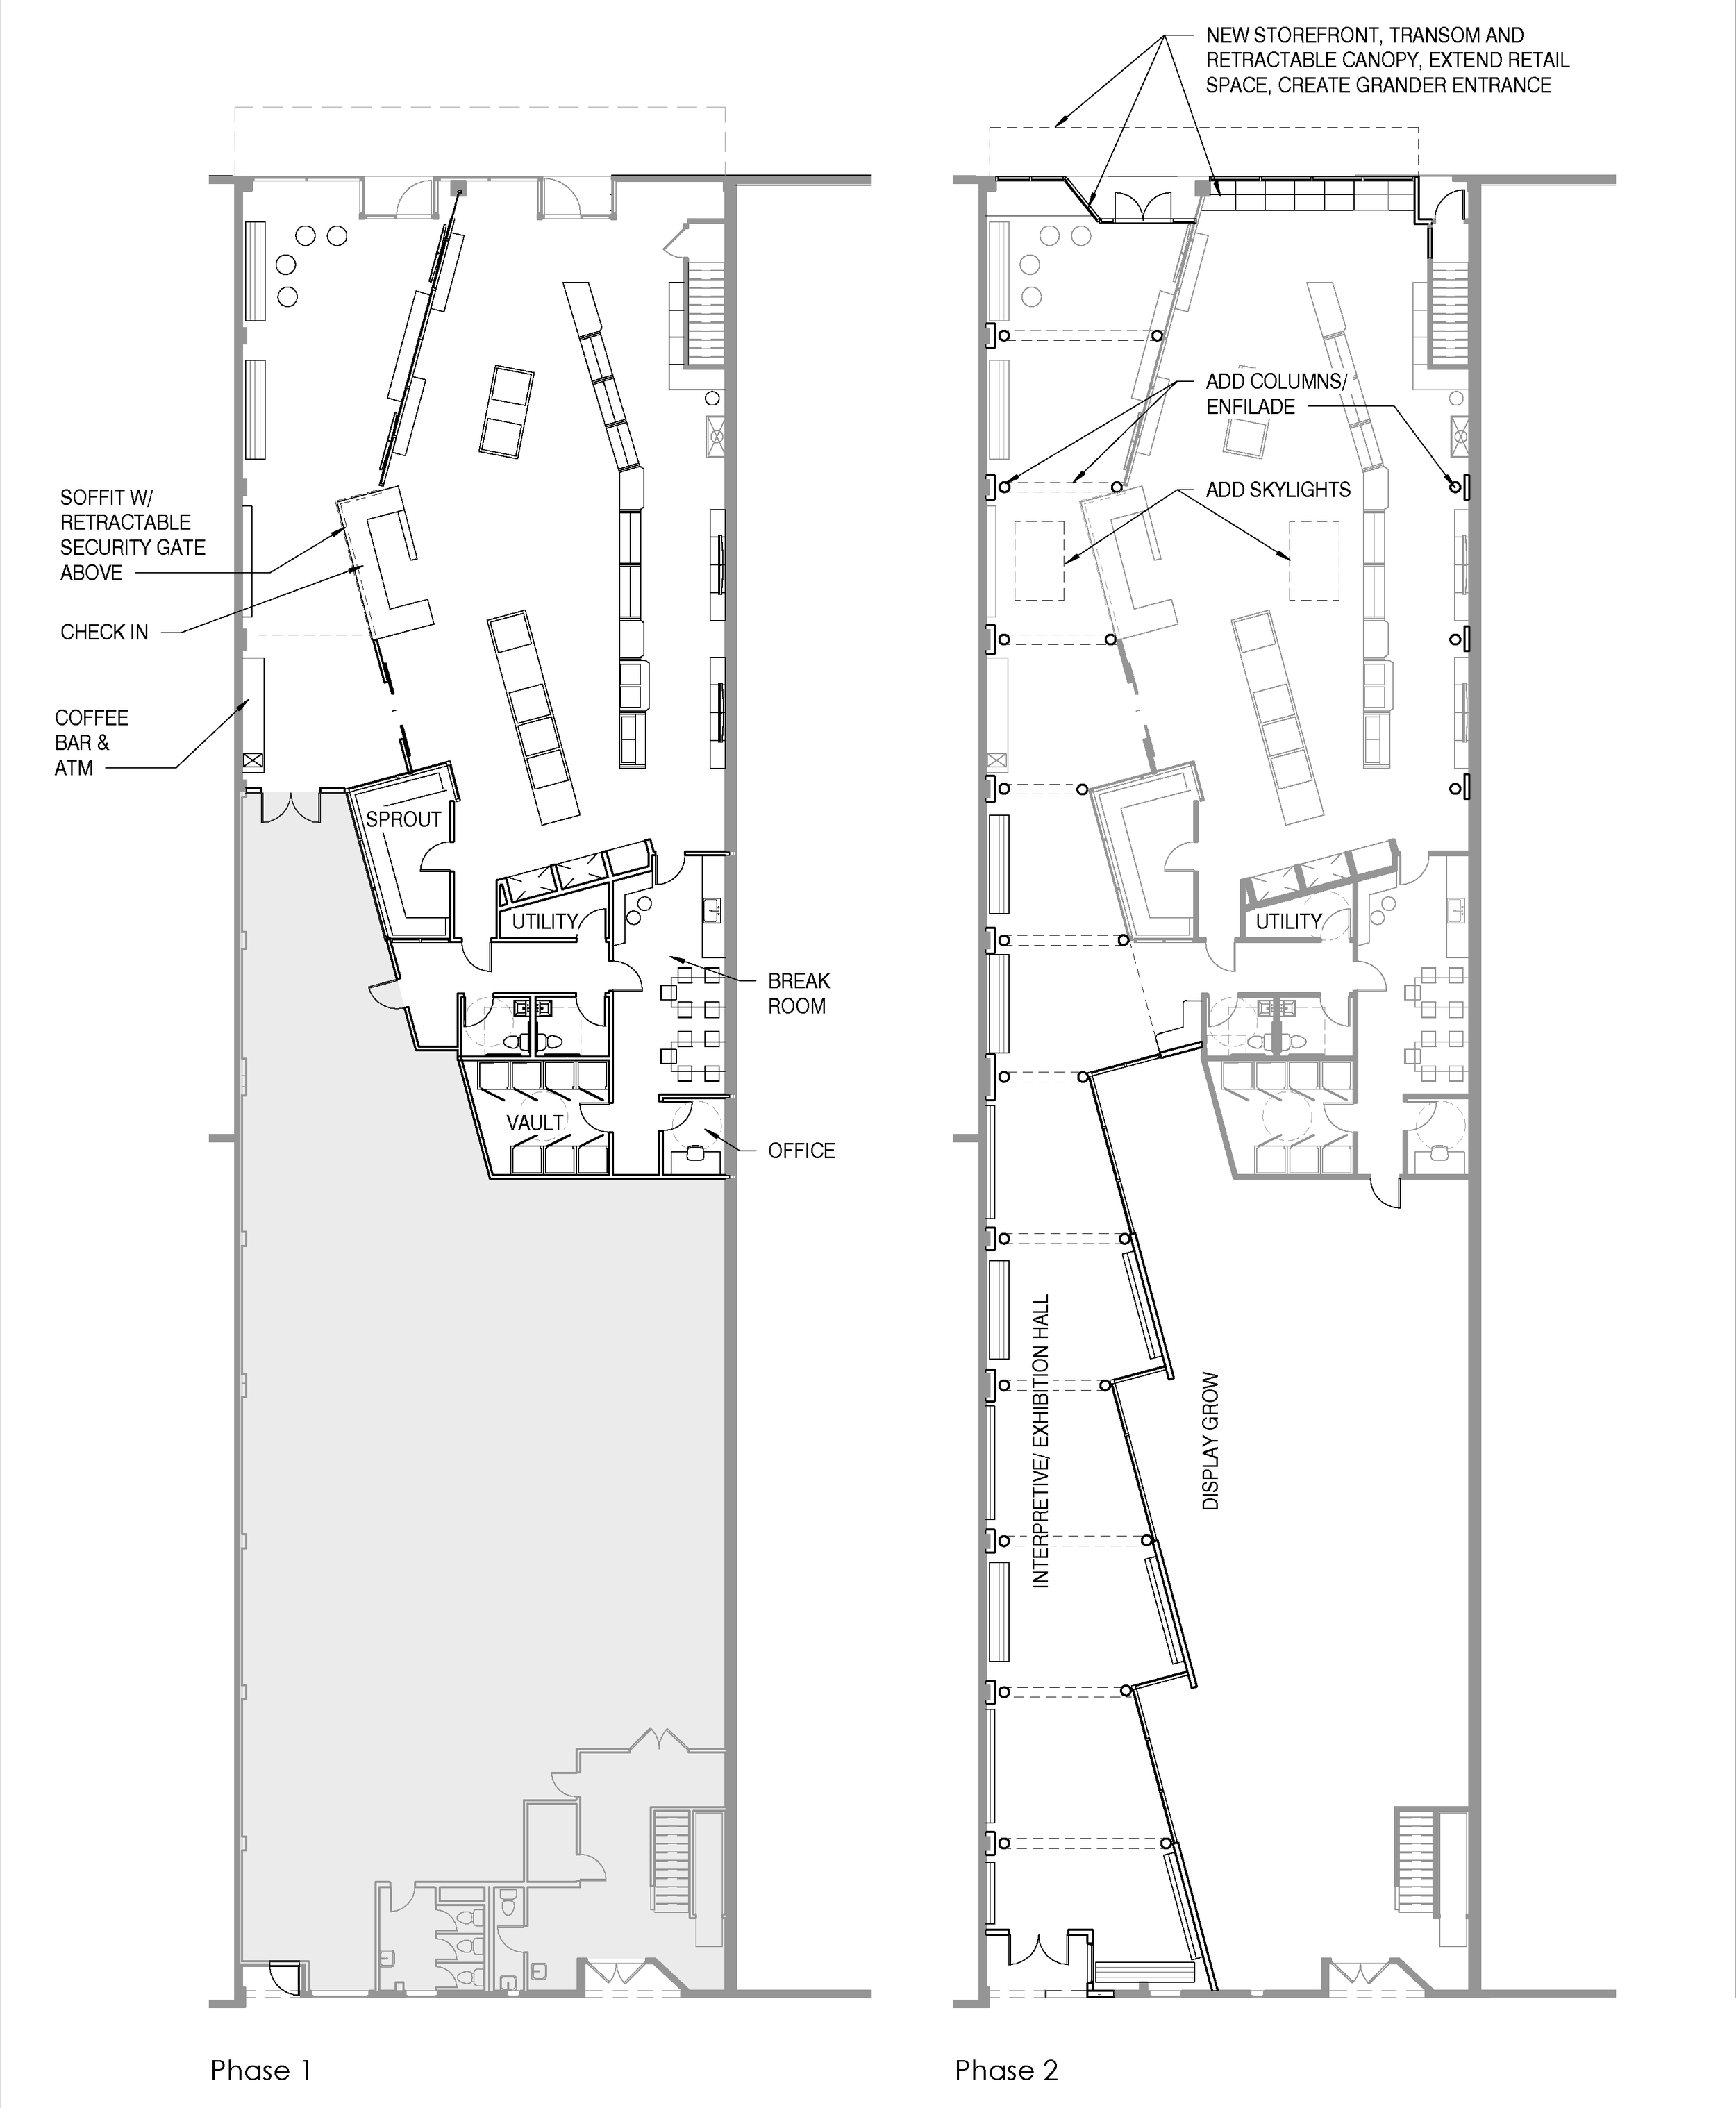 Harka Architecture_Five Zero Trees Astoria_Cannabis Retail_Plans.png